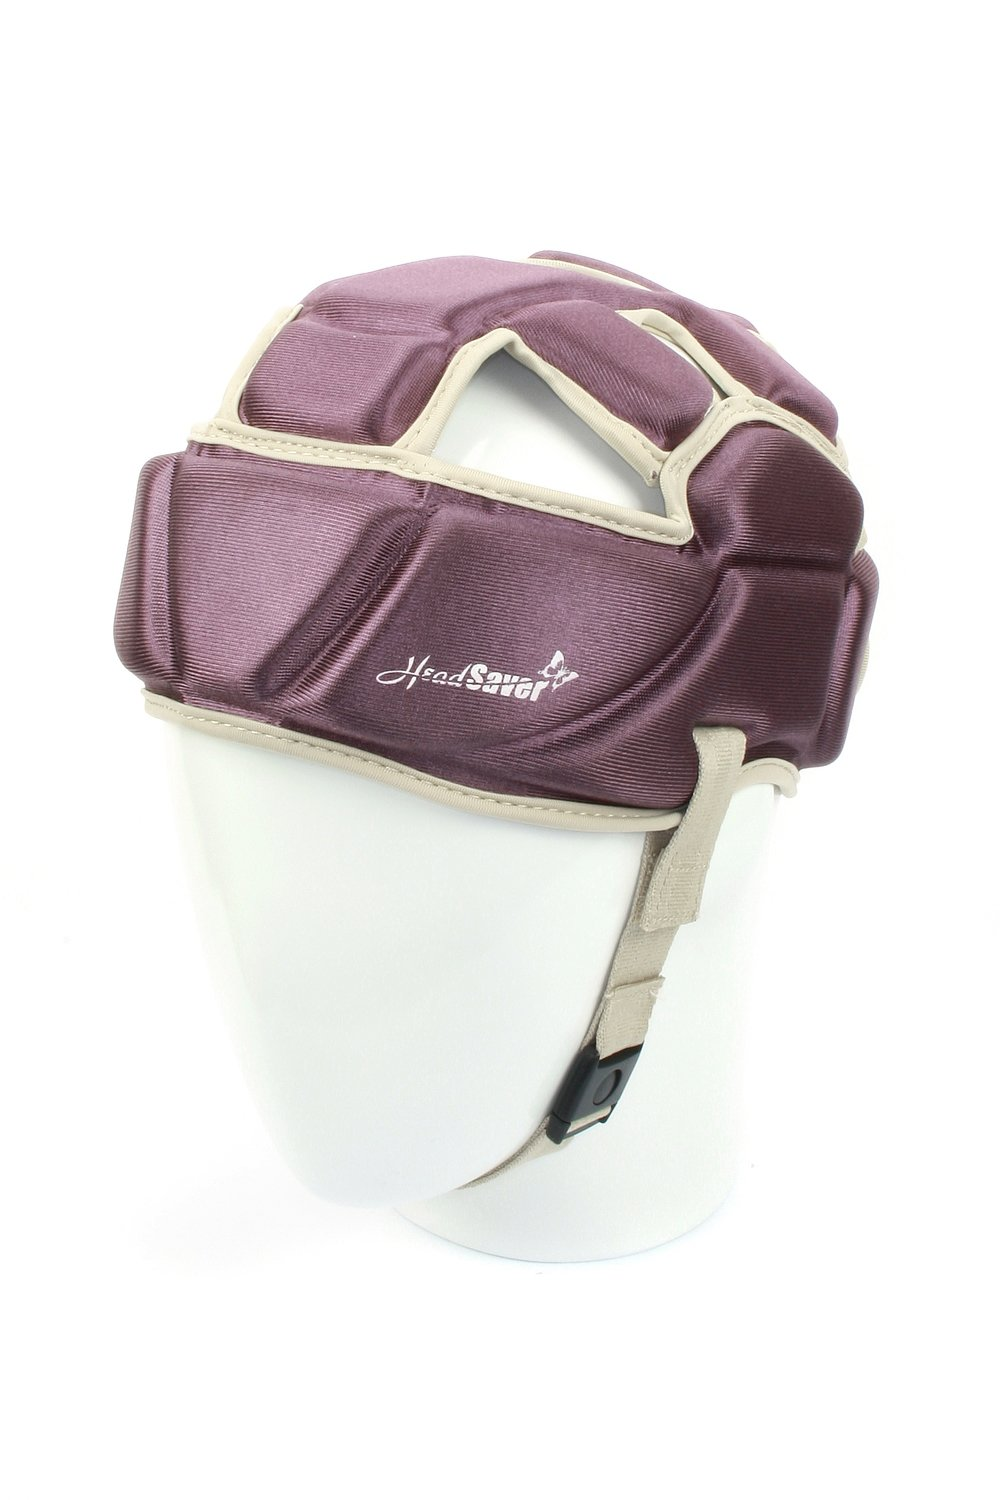 HeadSaver Soft Head Protector